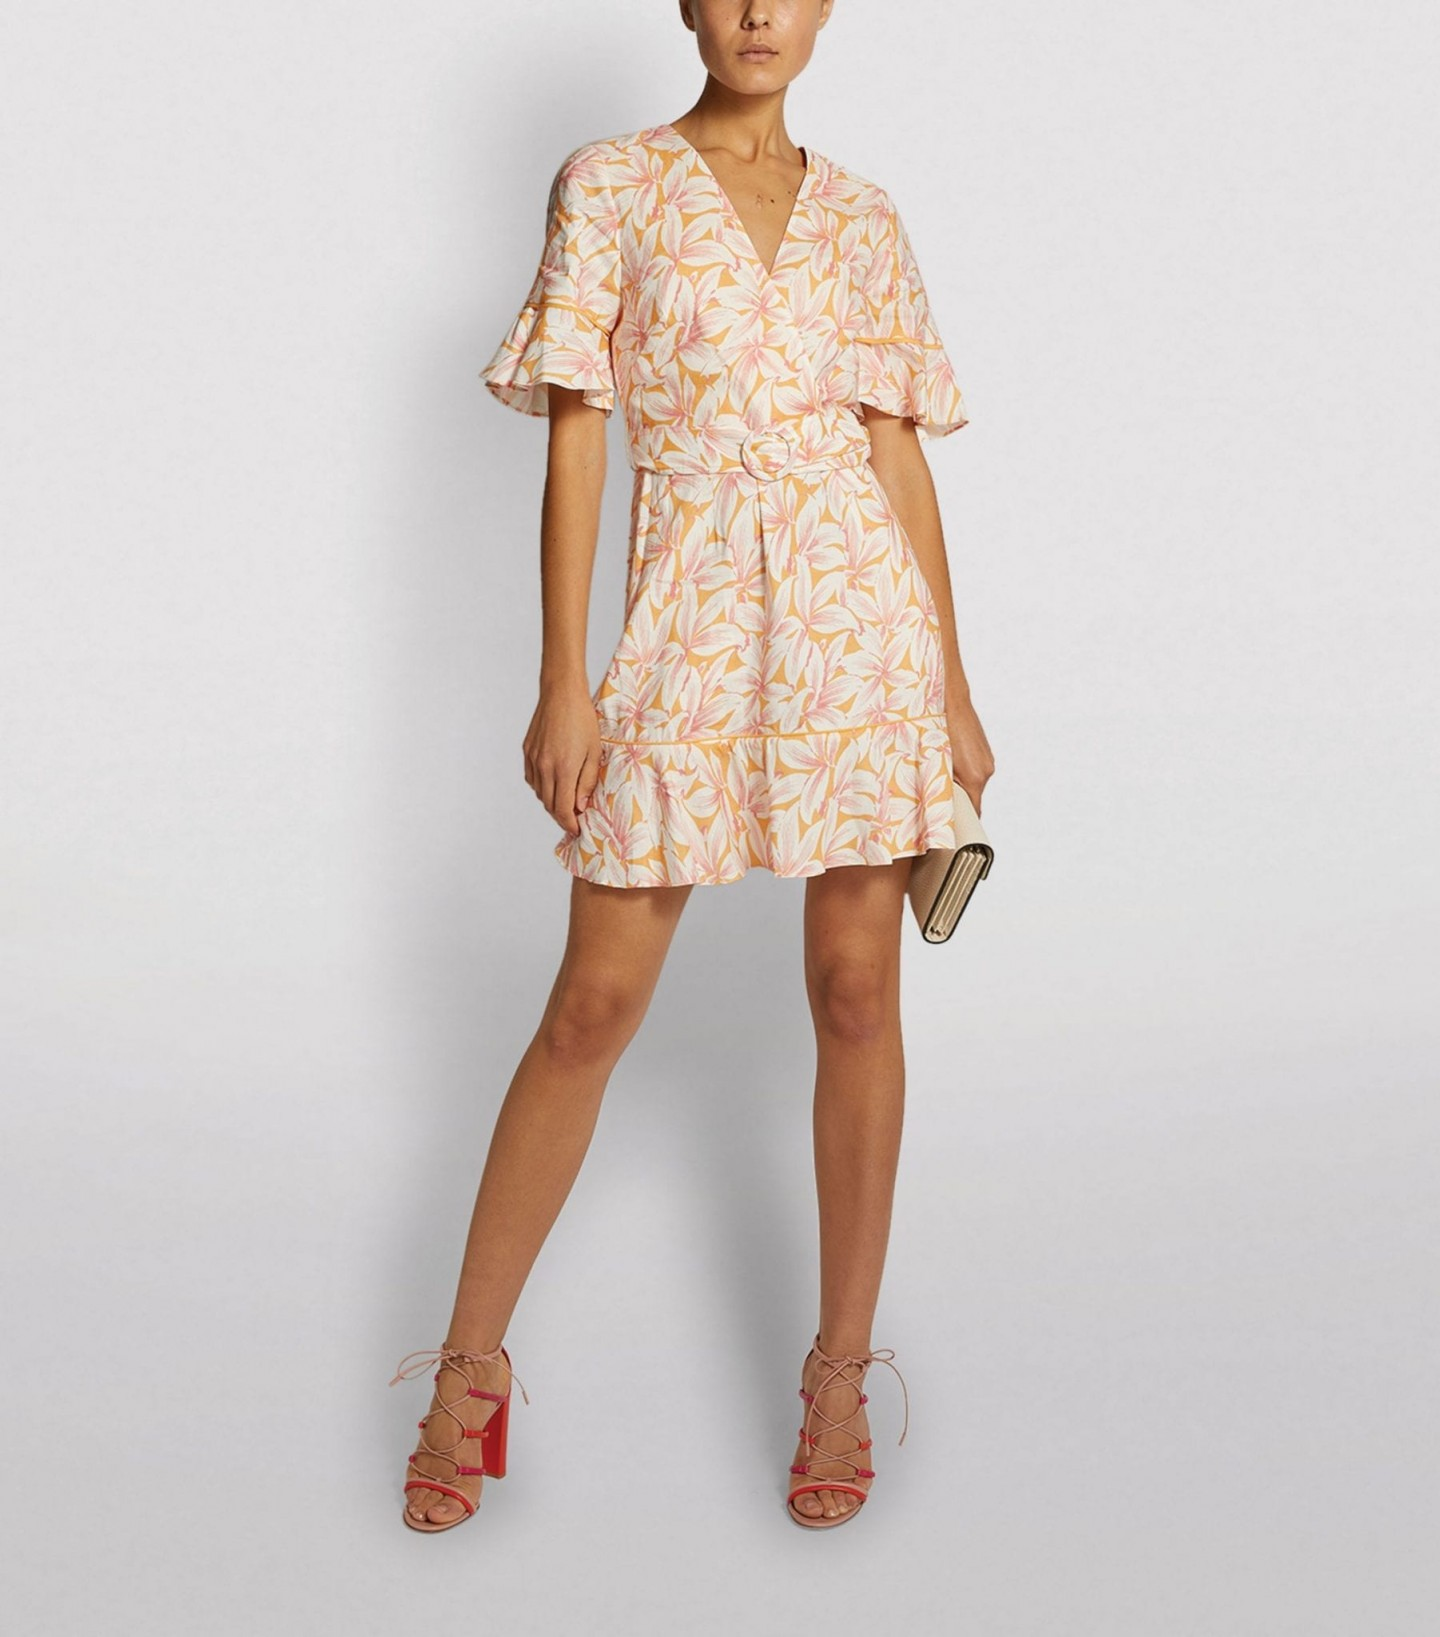 JONATHAN SIMKHAI Zoey Floral Ruffled Midi Dress